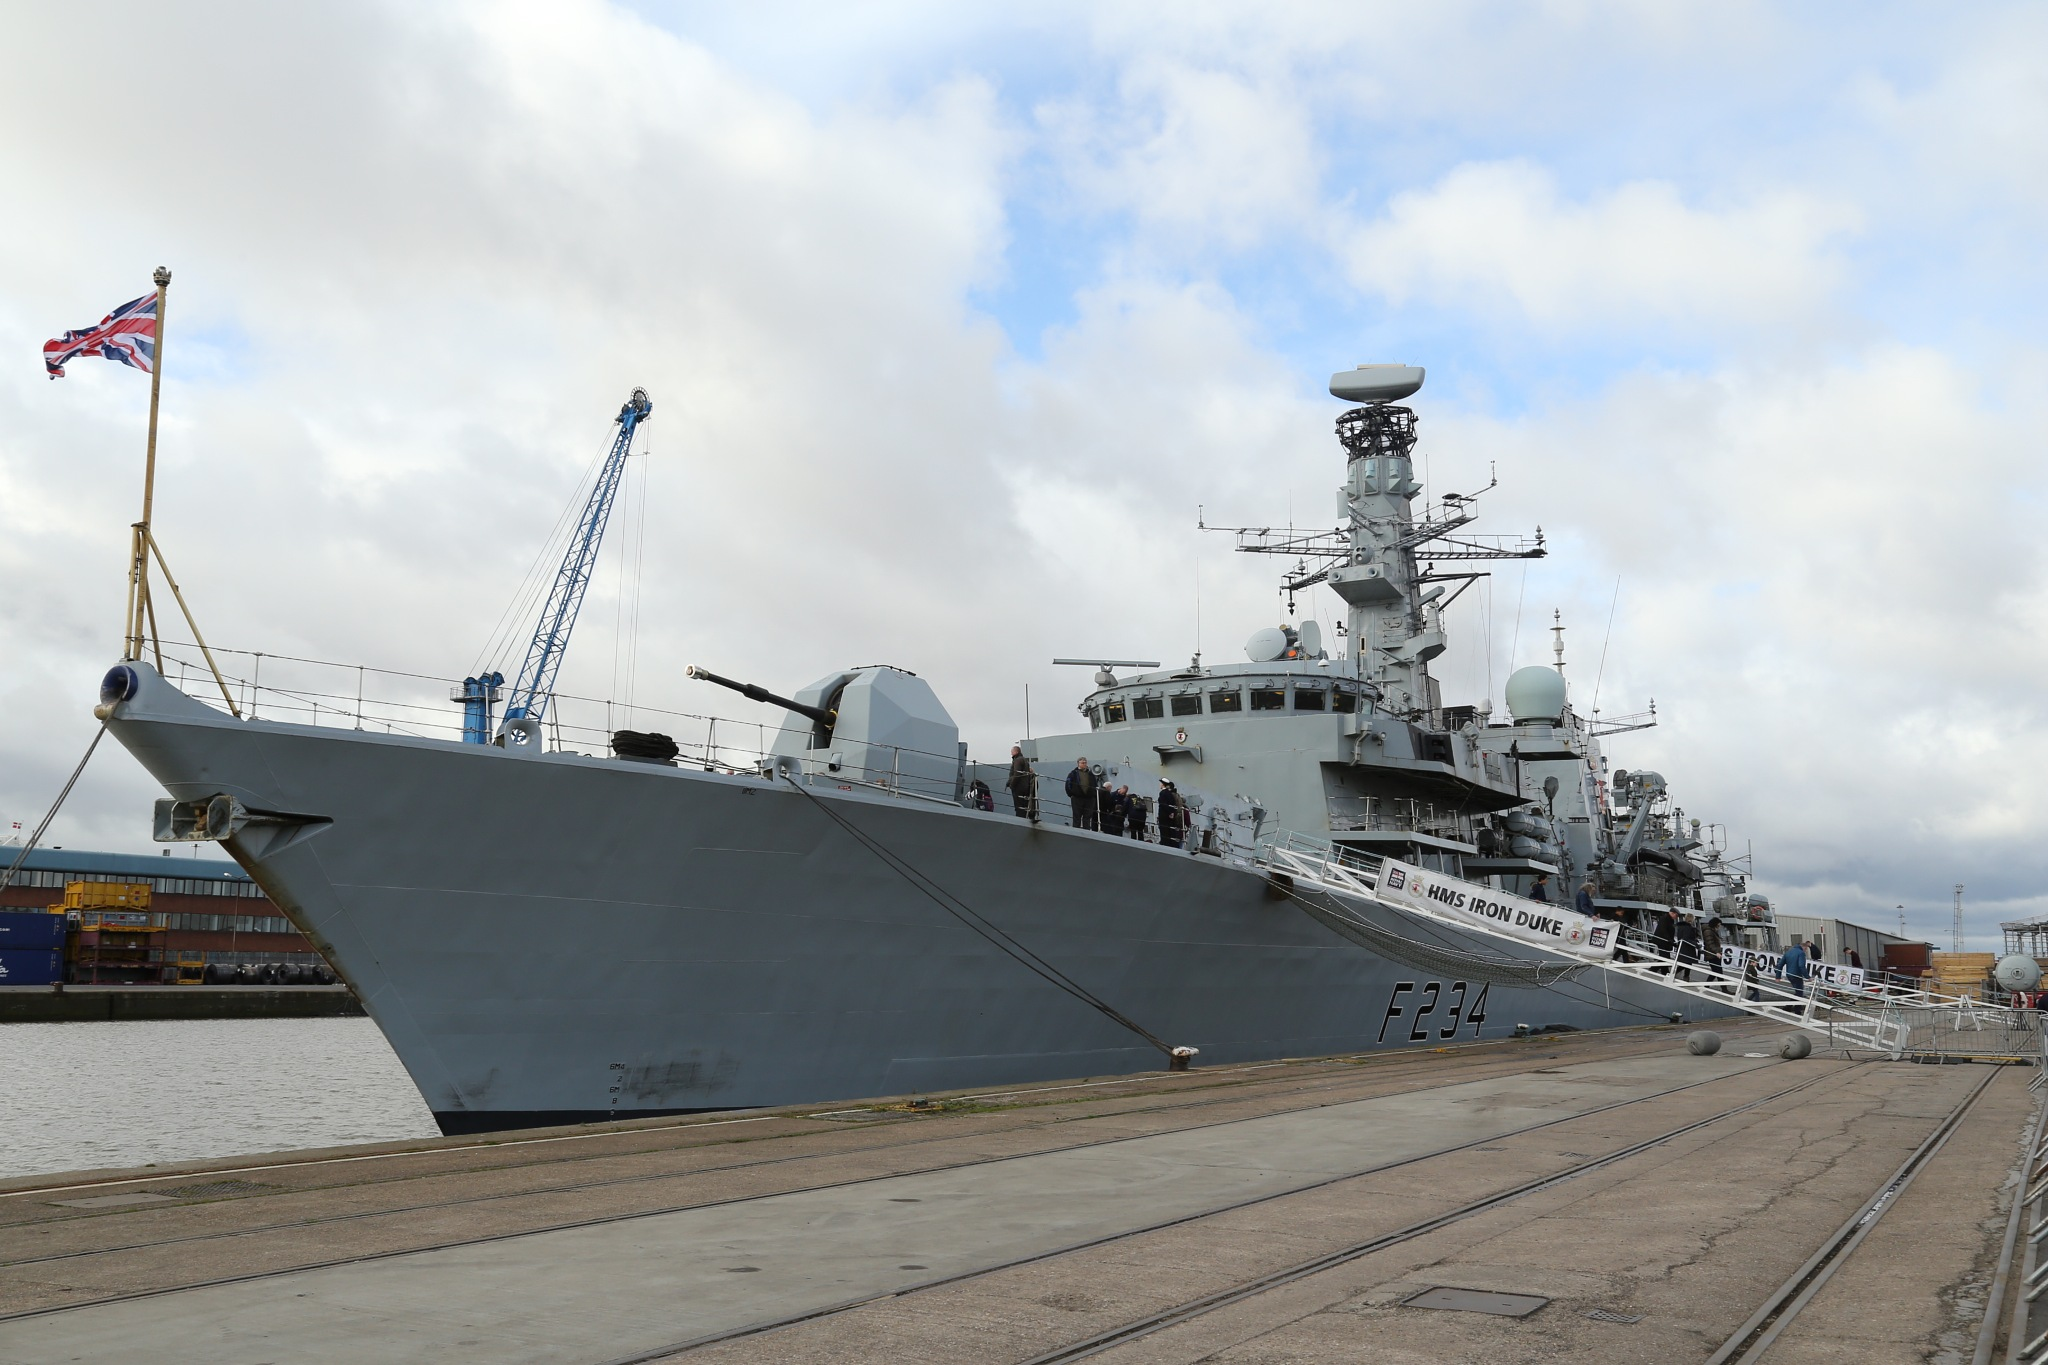 HMS IRON LADY in Hull docks this weekend by Petehudson